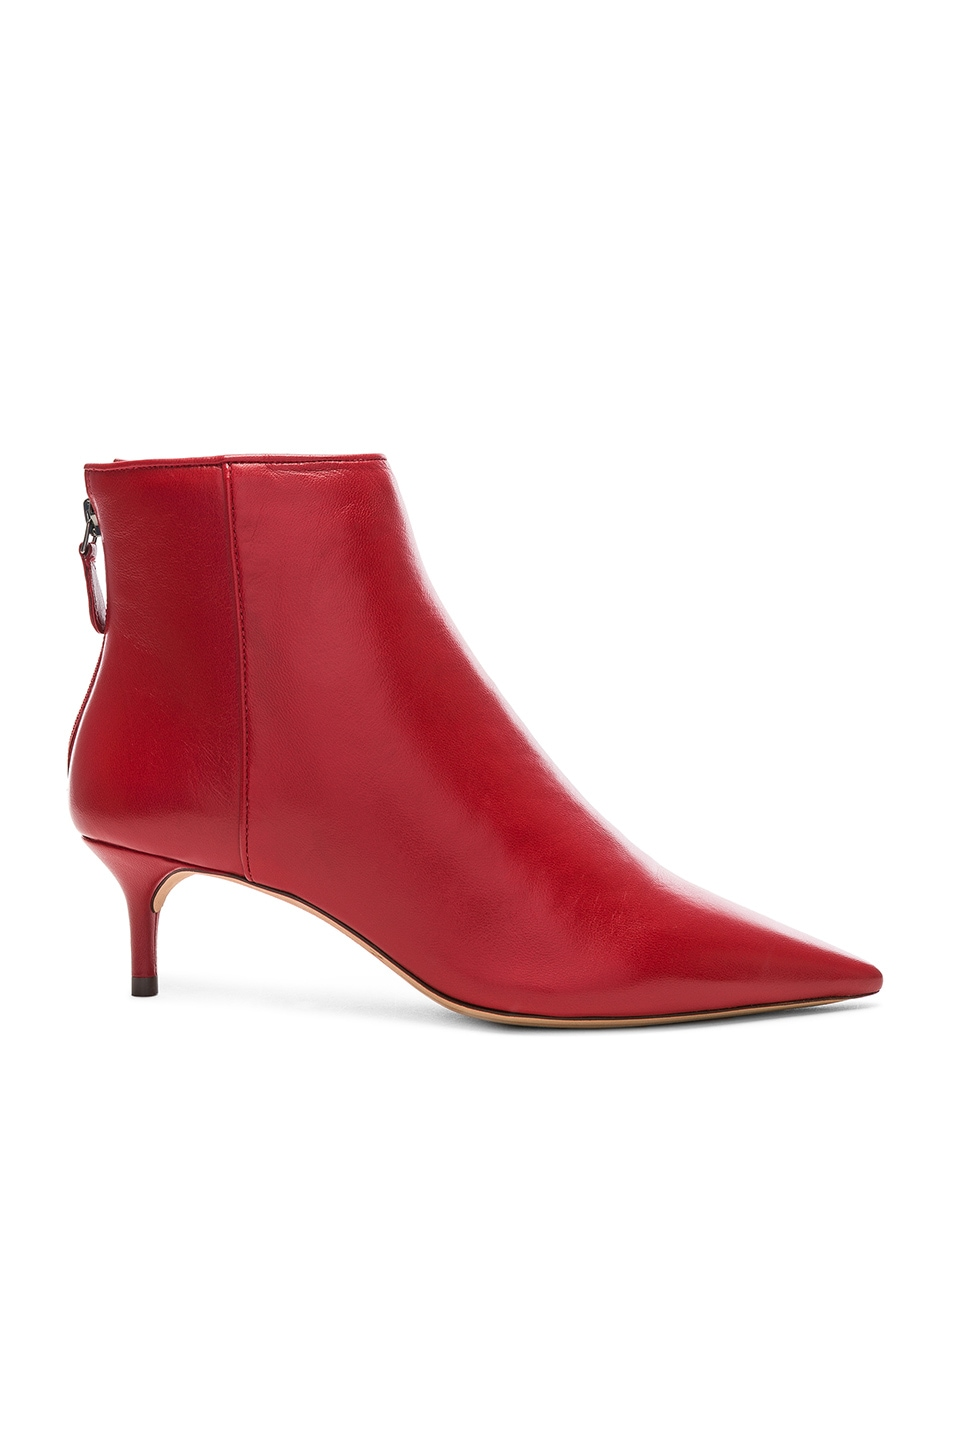 Image 1 of Alexandre Birman Leather Kittie Ankle Boots in Flame